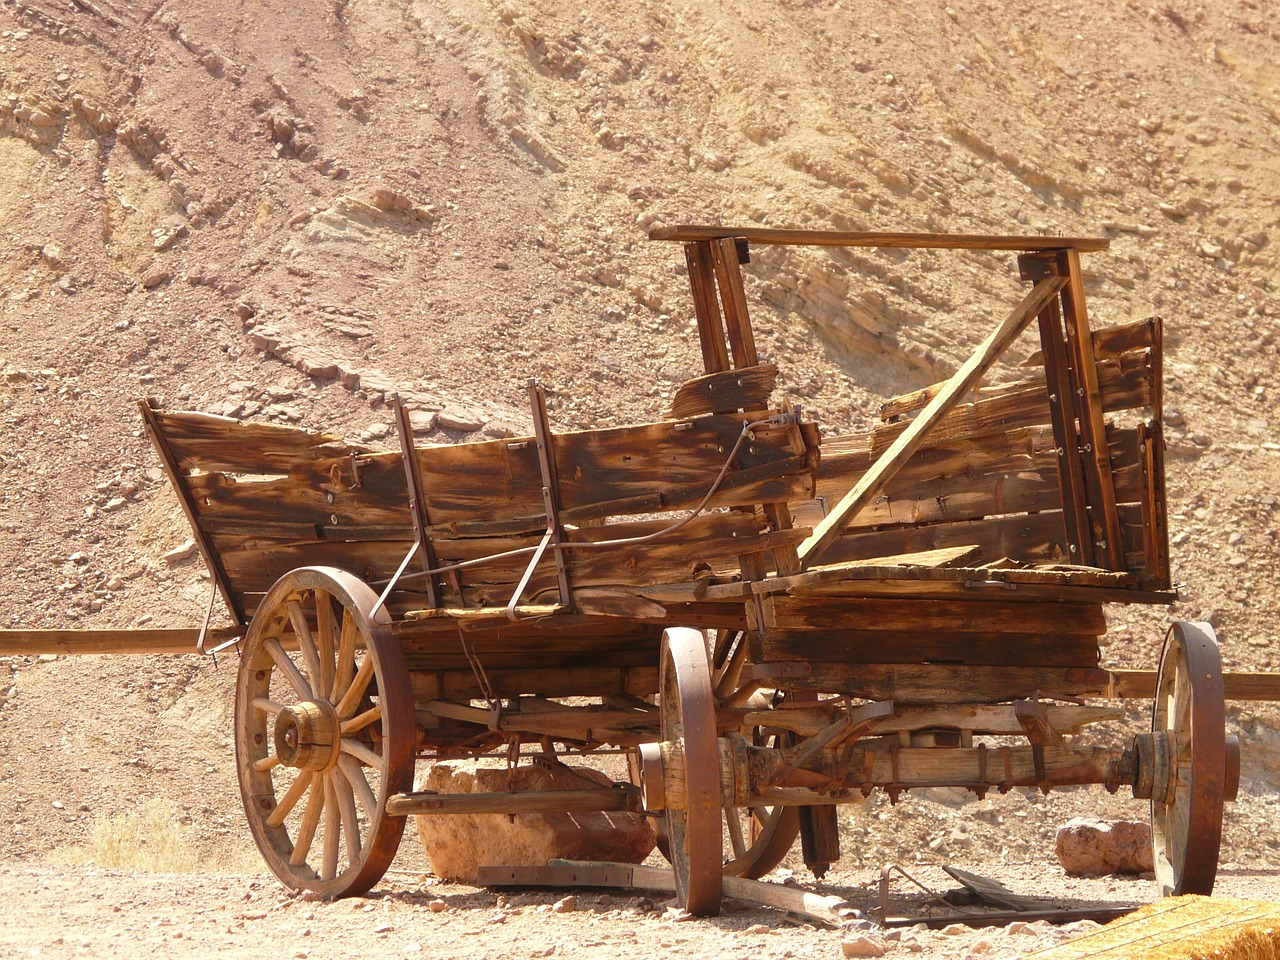 calico calico ghost town ghost town free picture